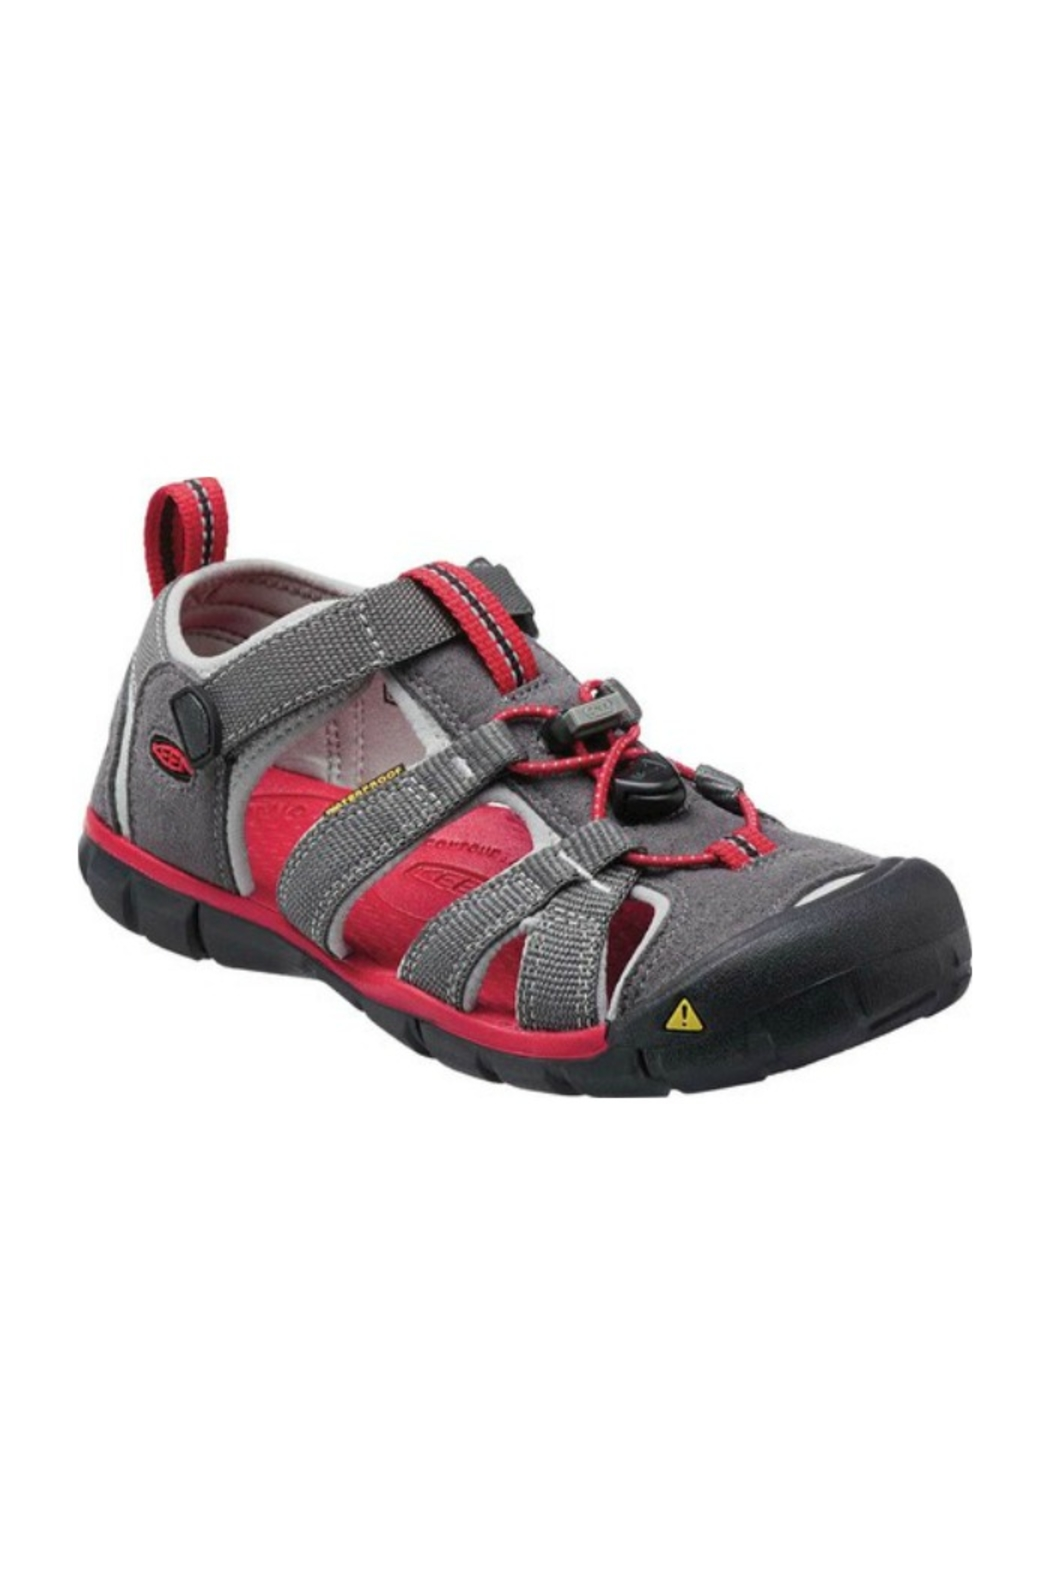 Keen Seacamp II in Magnet Red - Main Image